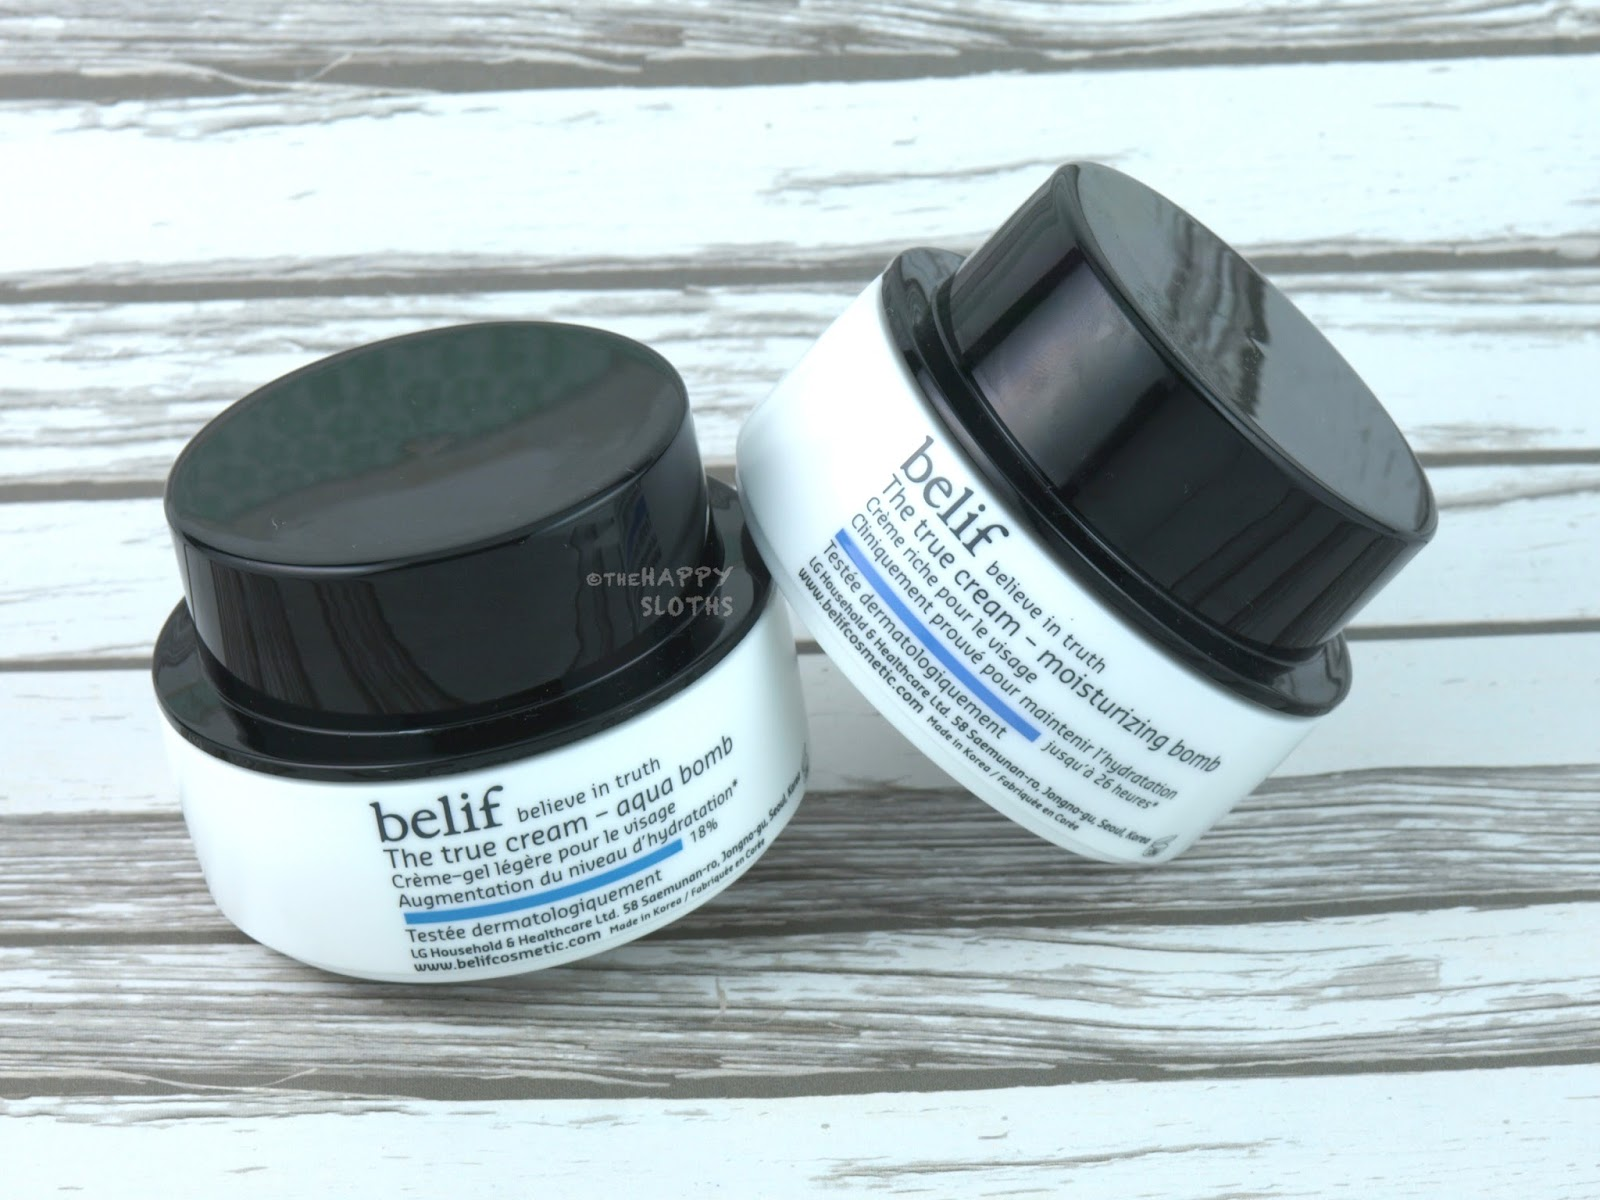 Belif The True Cream | Aqua Bomb & Moisturizing Bomb: Review